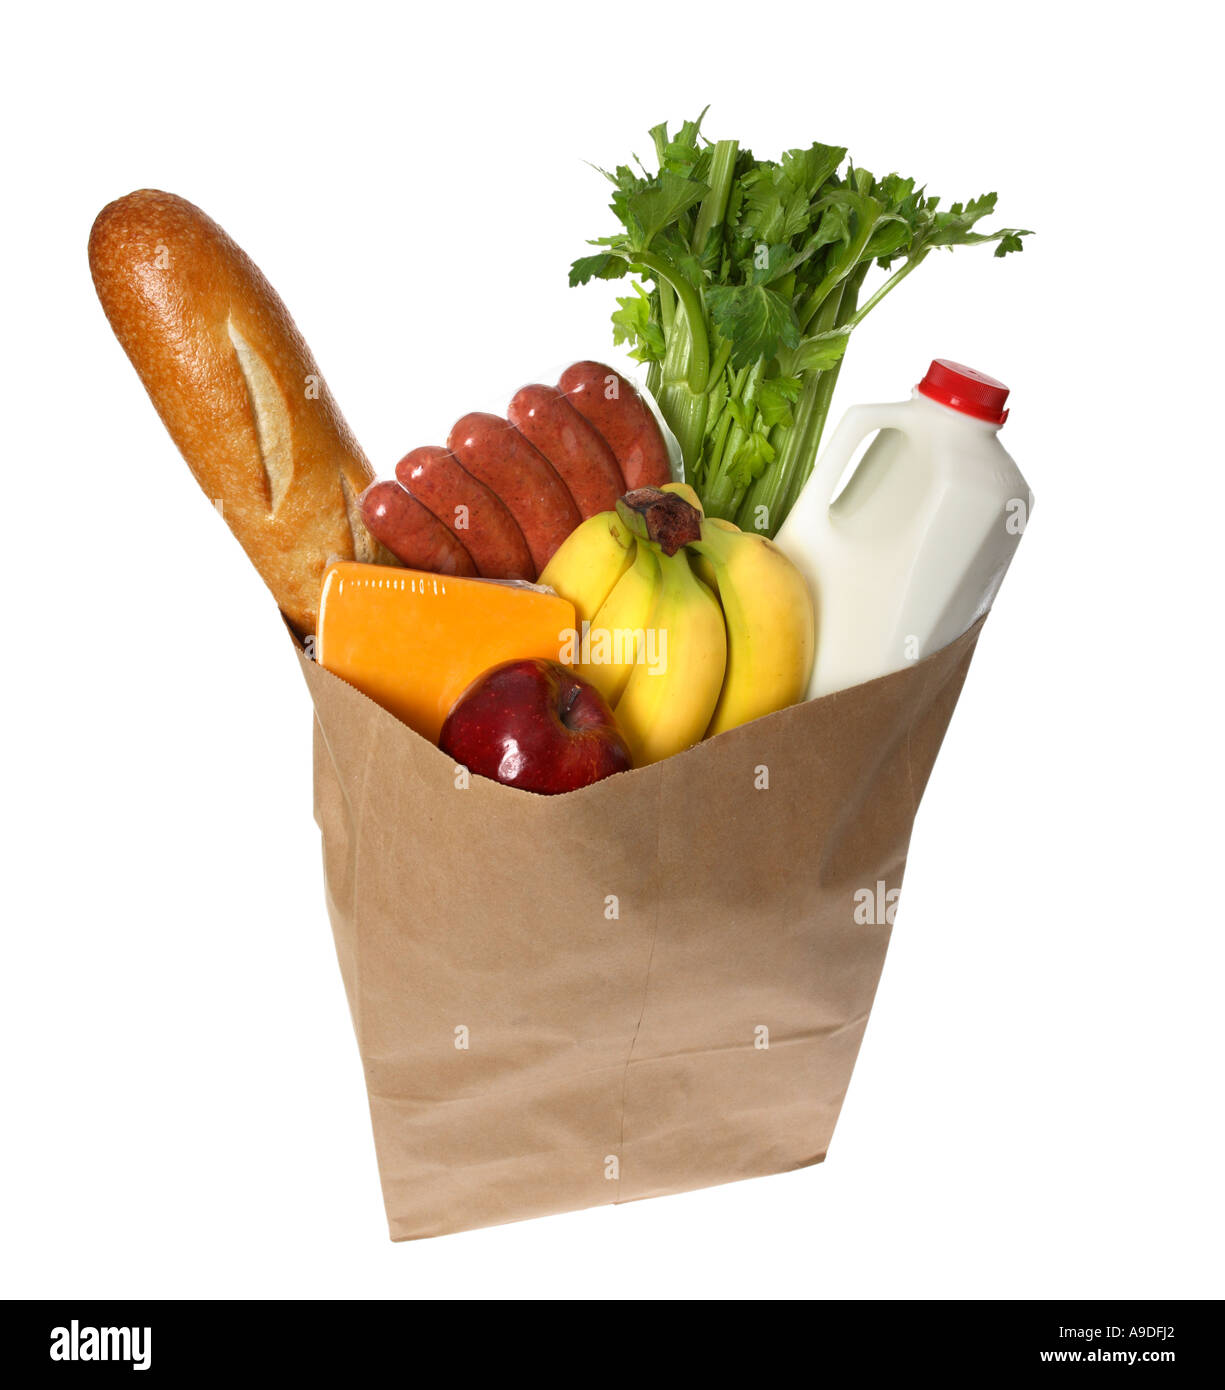 Grocery bag full of groceries - Stock Image